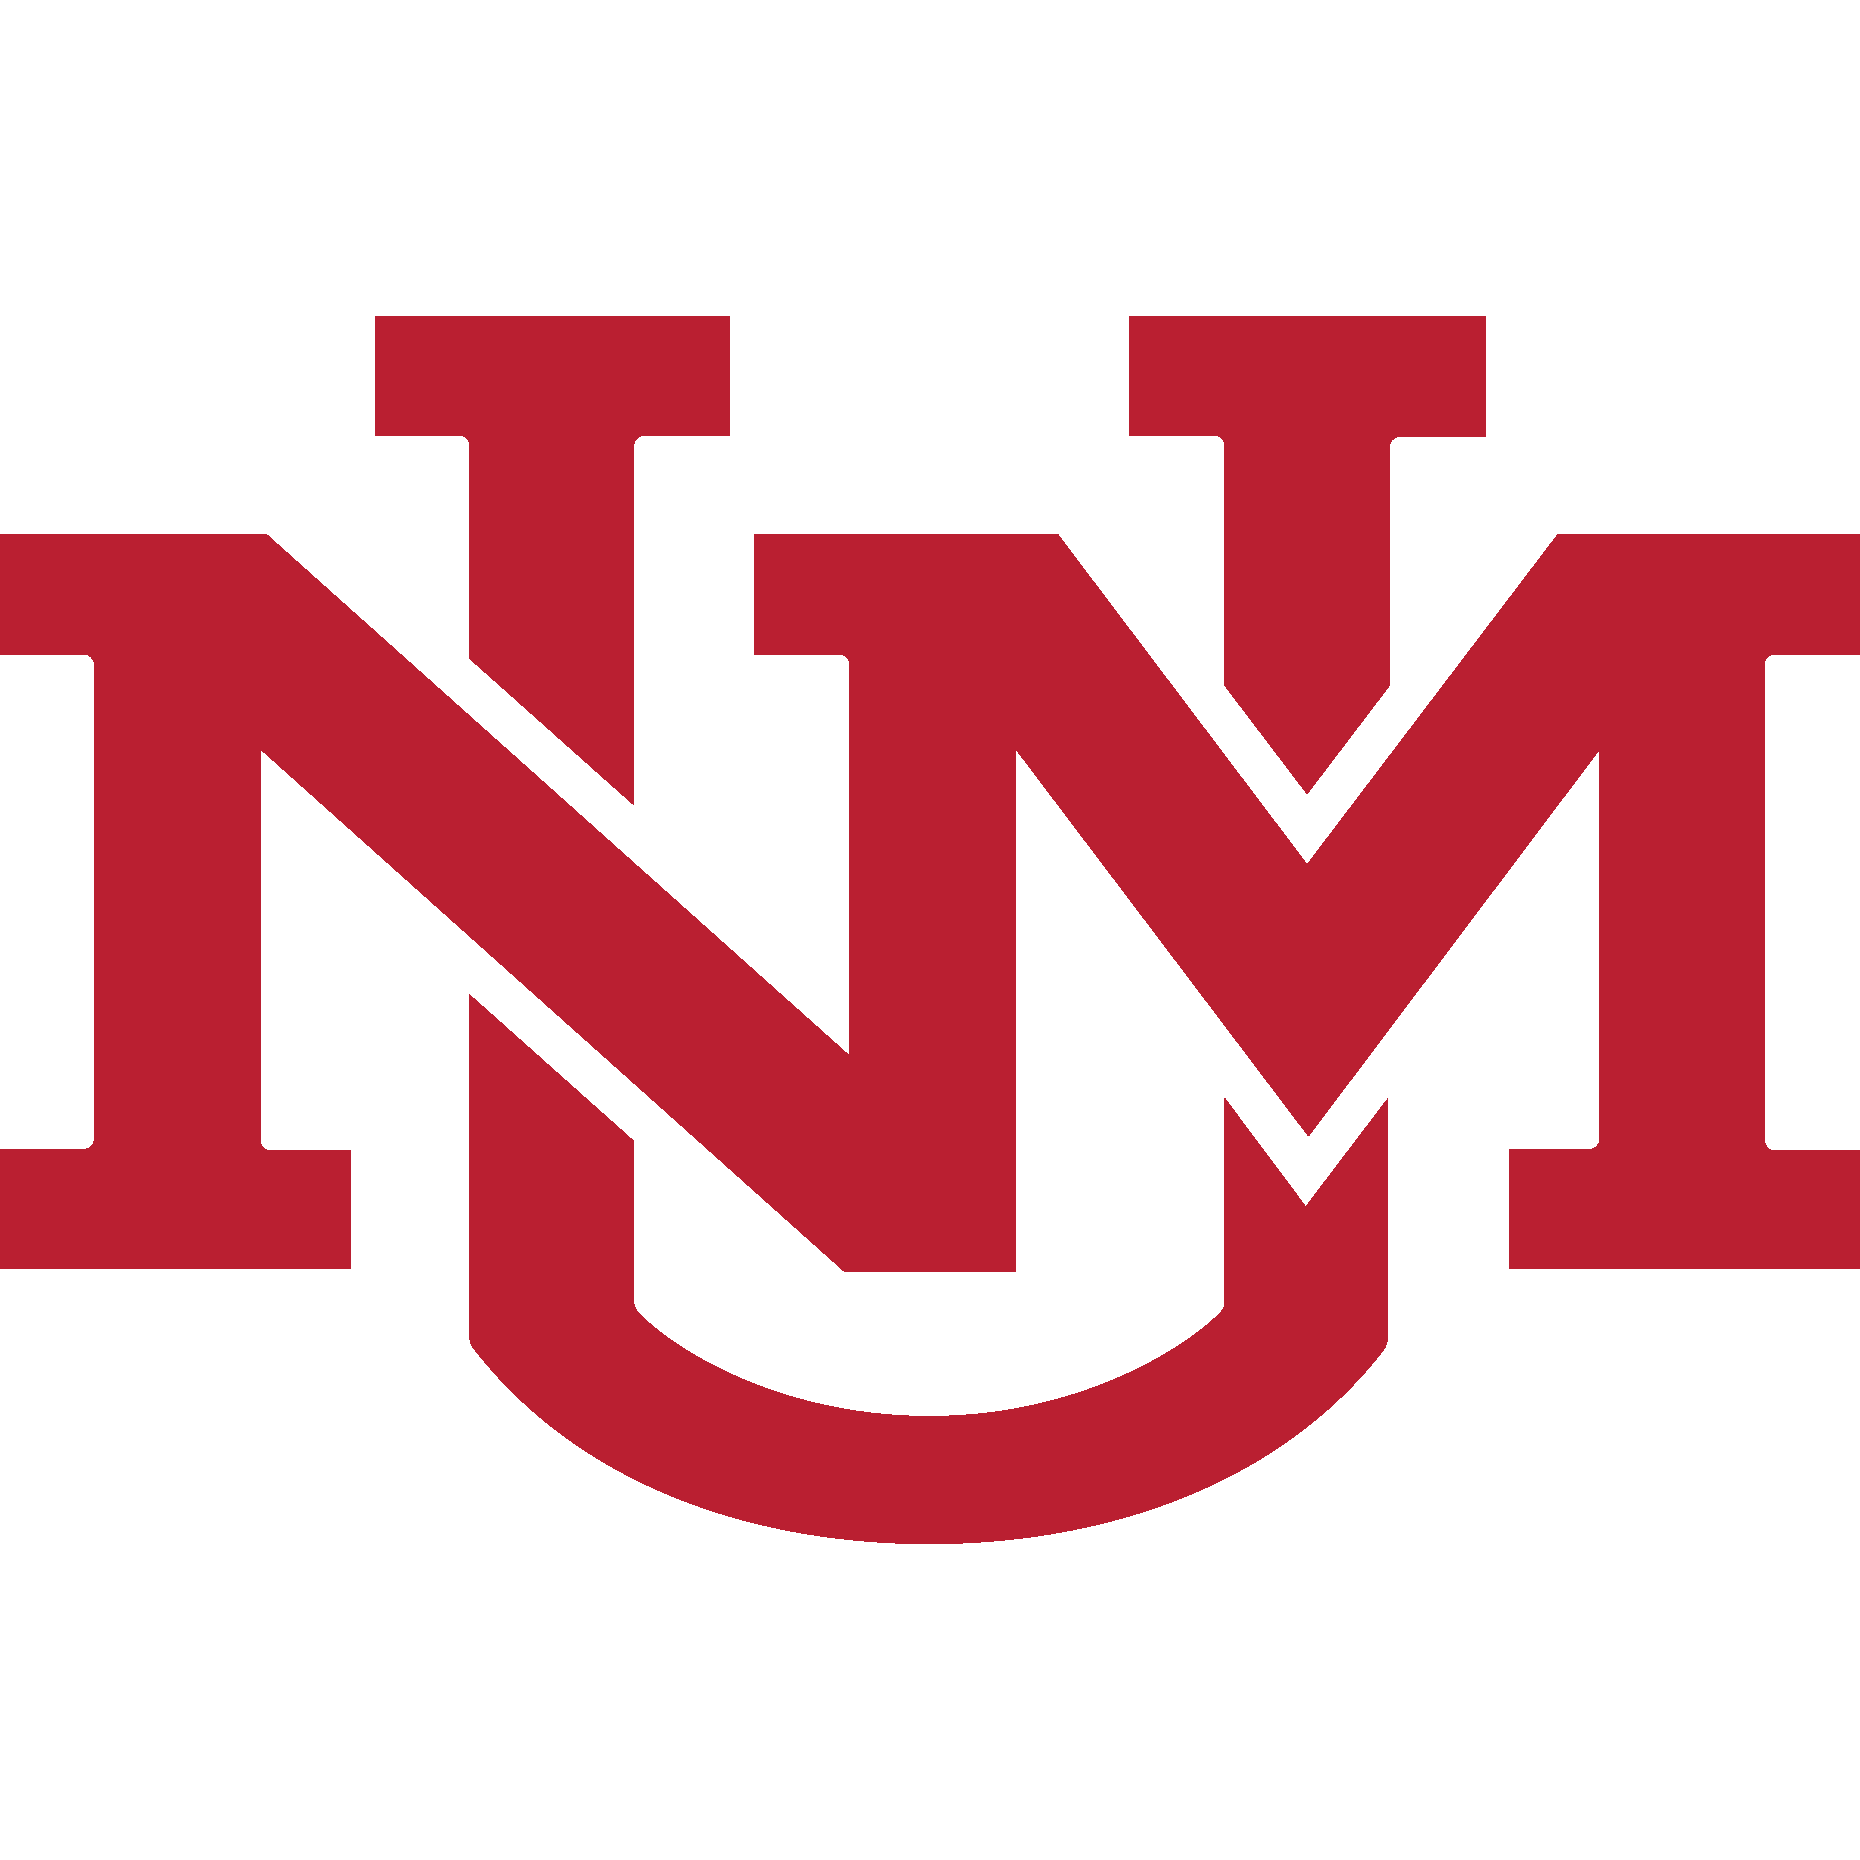 50 Years Of Navajo At Unm The Navajo Language Program The Department Of Linguistics